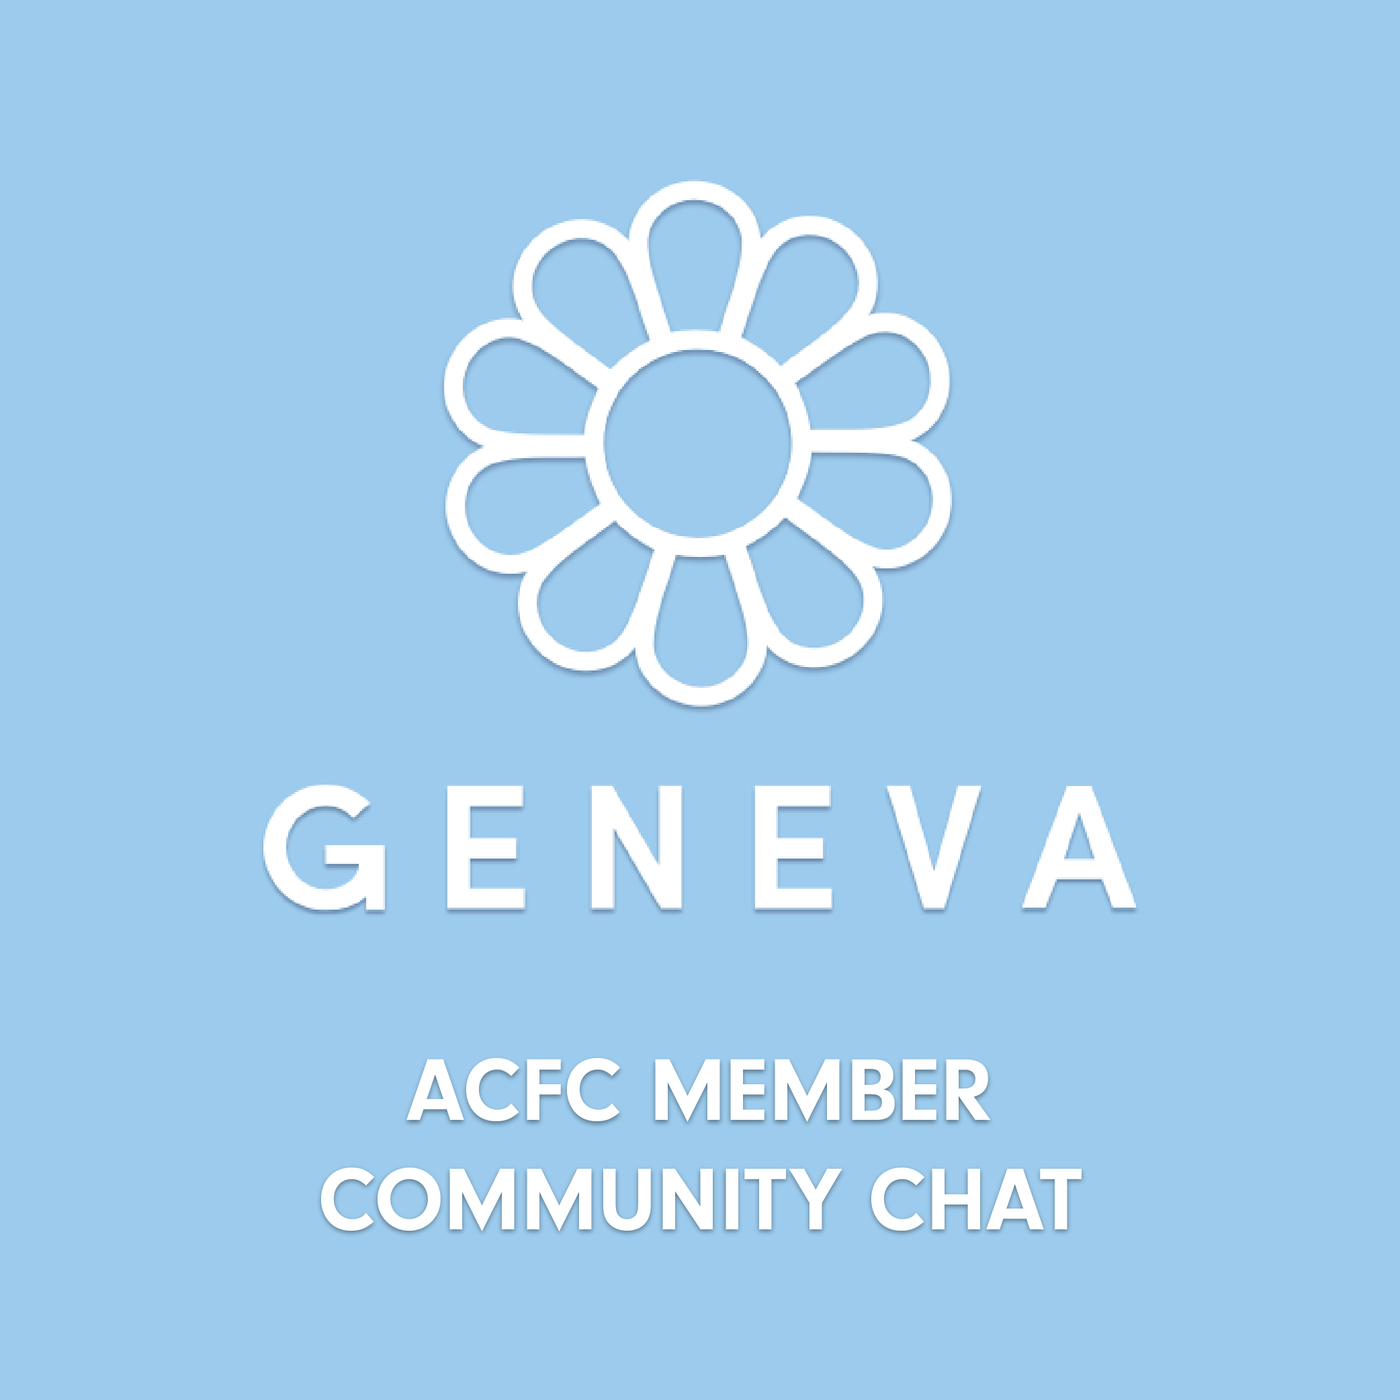 ACFC Member Community Chat - Powered by Geneva